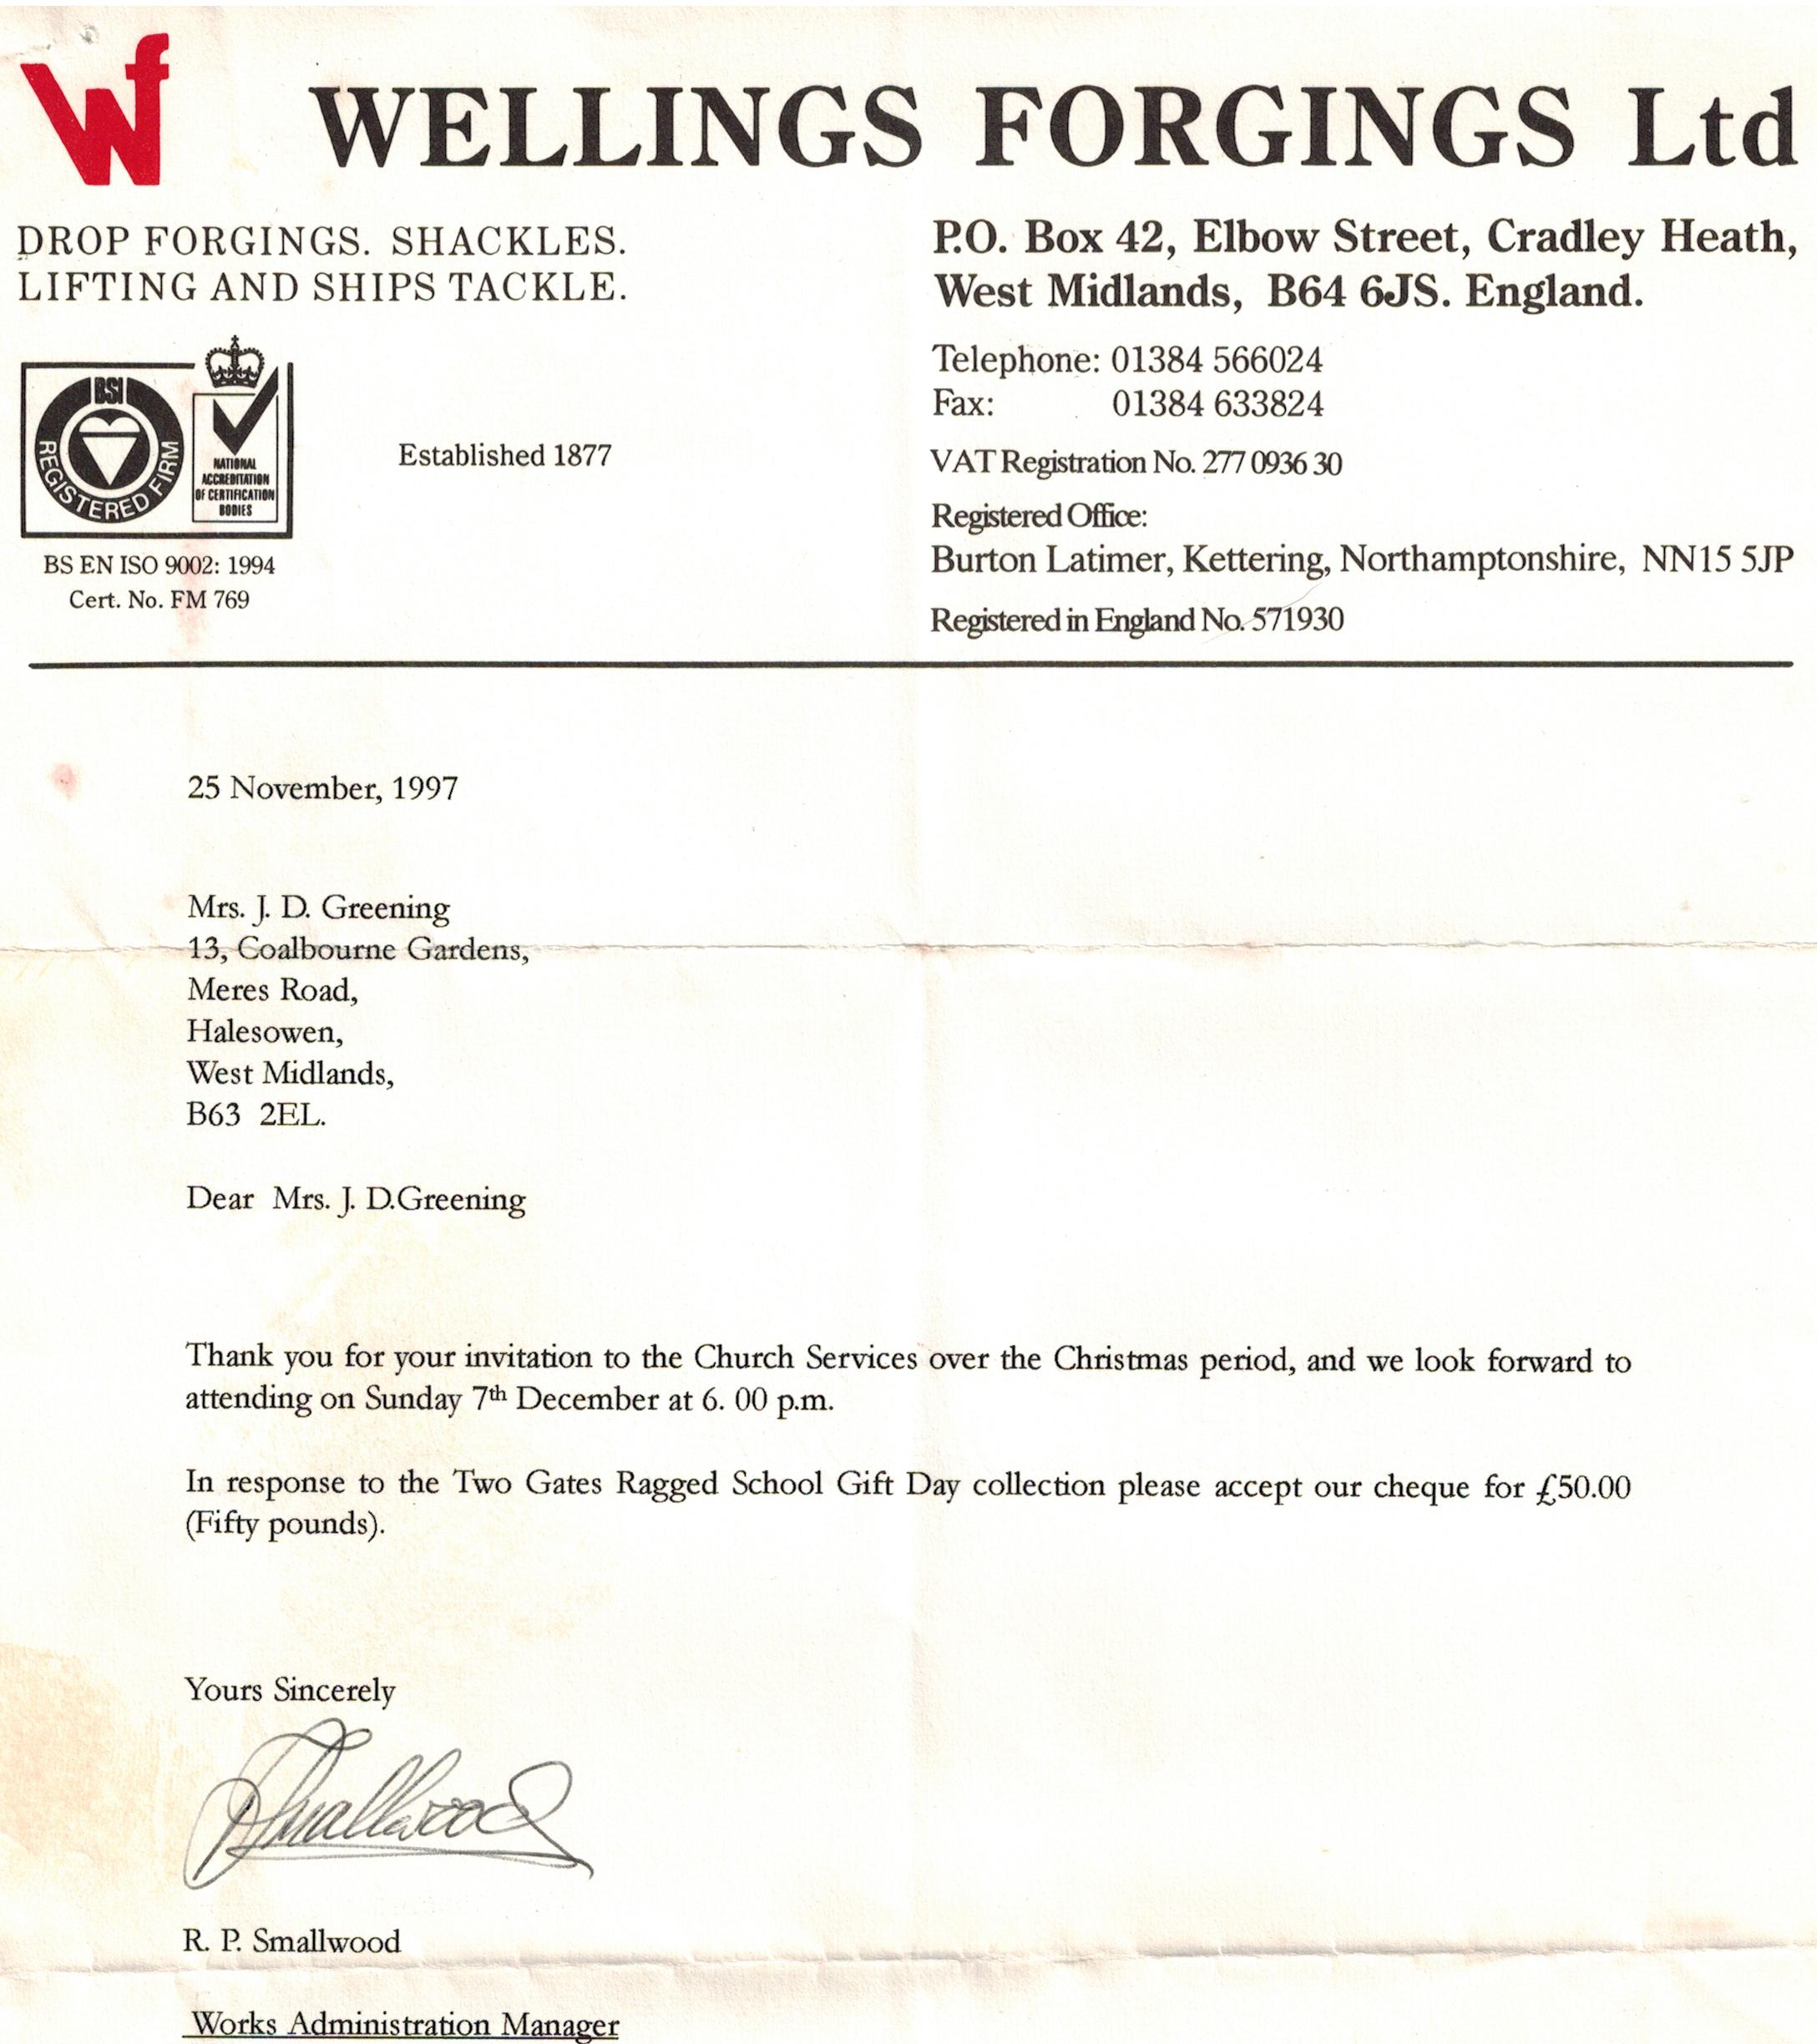 B185 Letter [Wellings Forgings]Nov1997